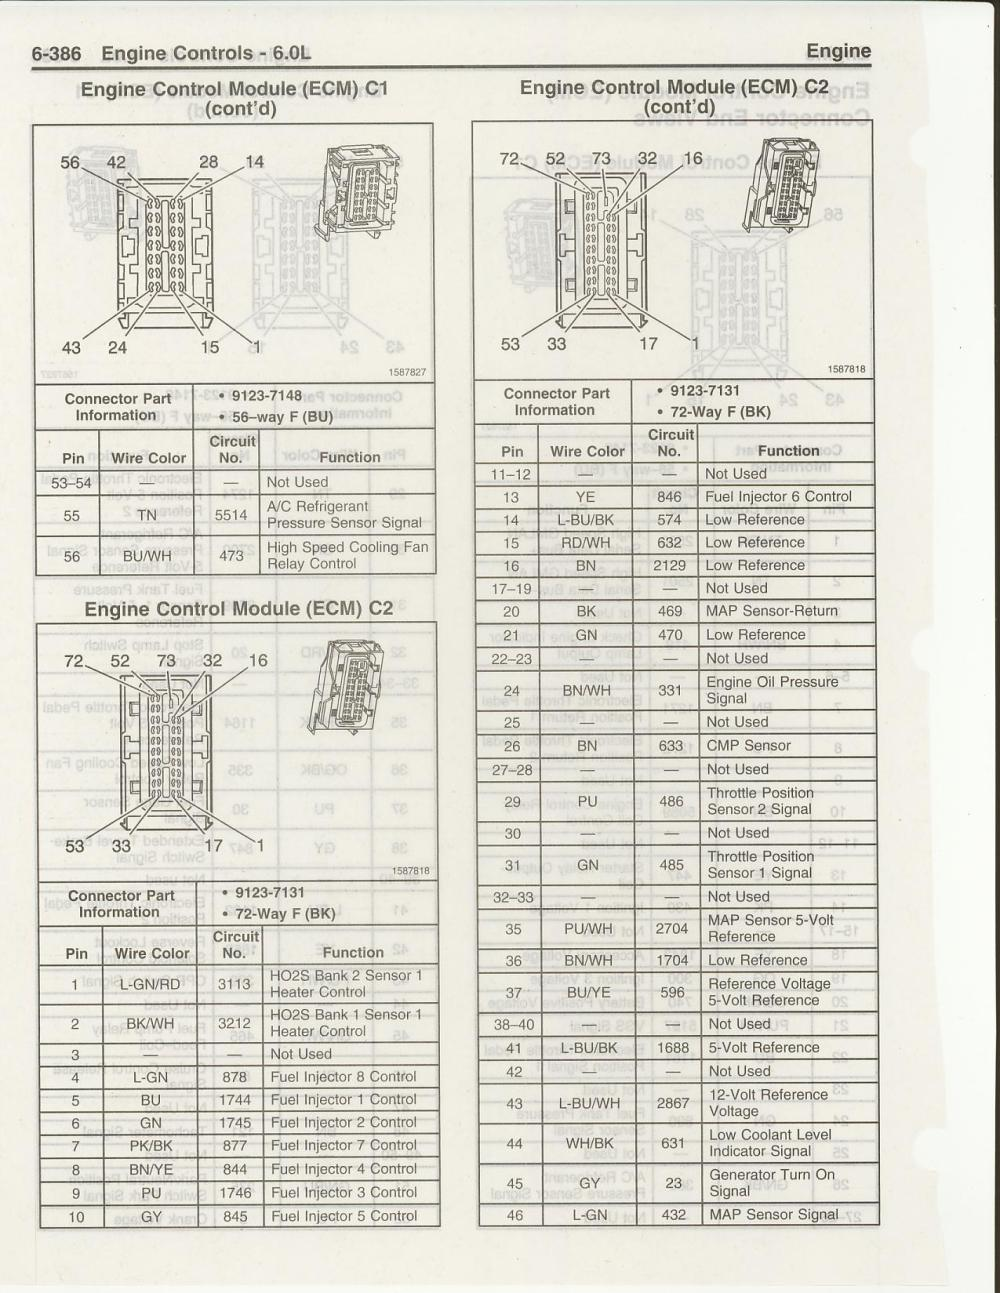 medium resolution of http www ls2 com boggs ls2 enginec controls08 jpg